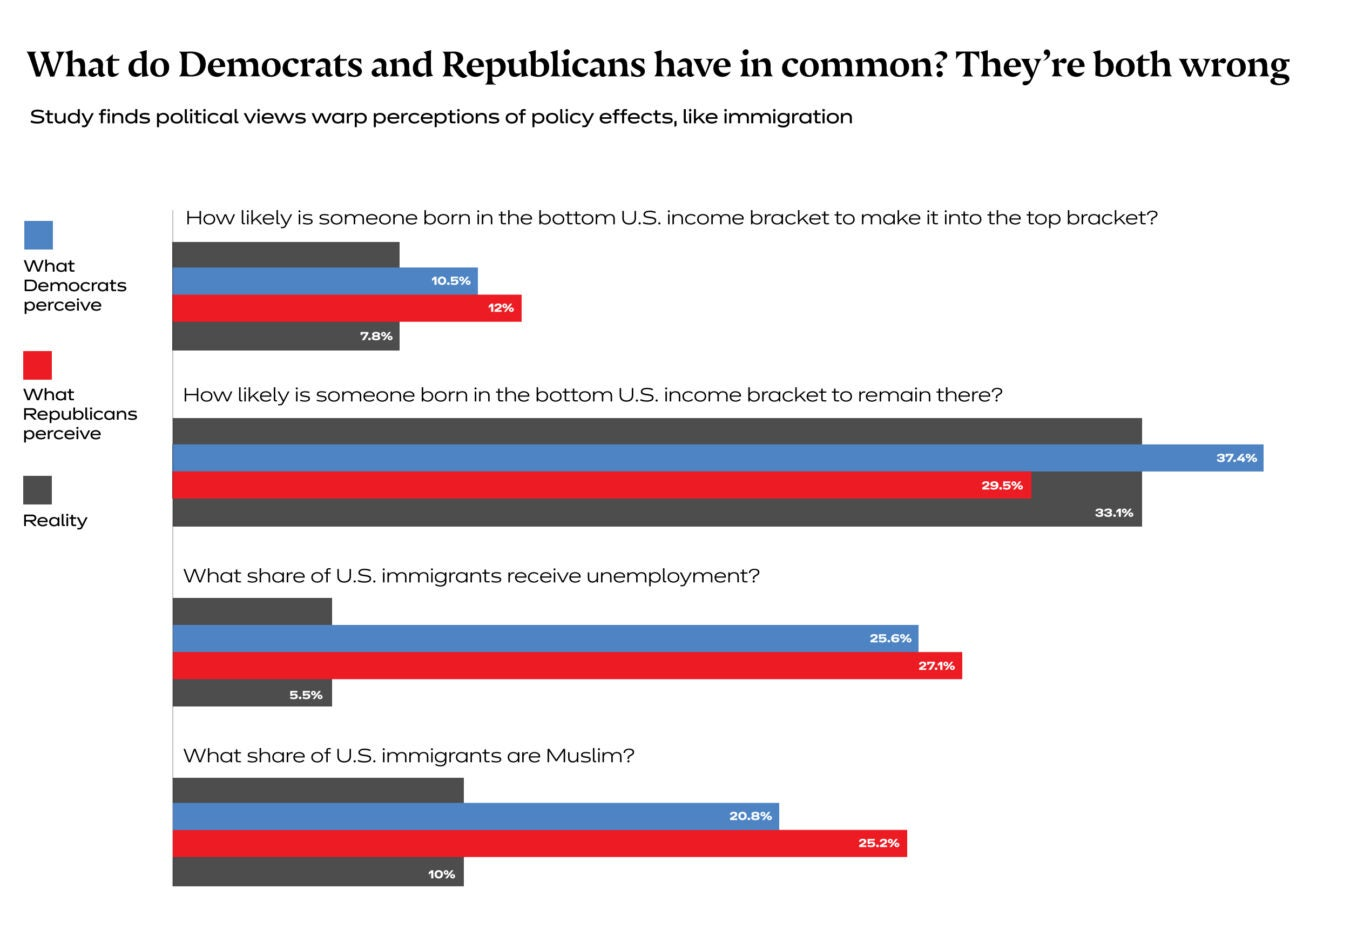 Bar chart shows Democrat and Republic perceptions of statistics about immigration vs. the reality, and how both are skewed.